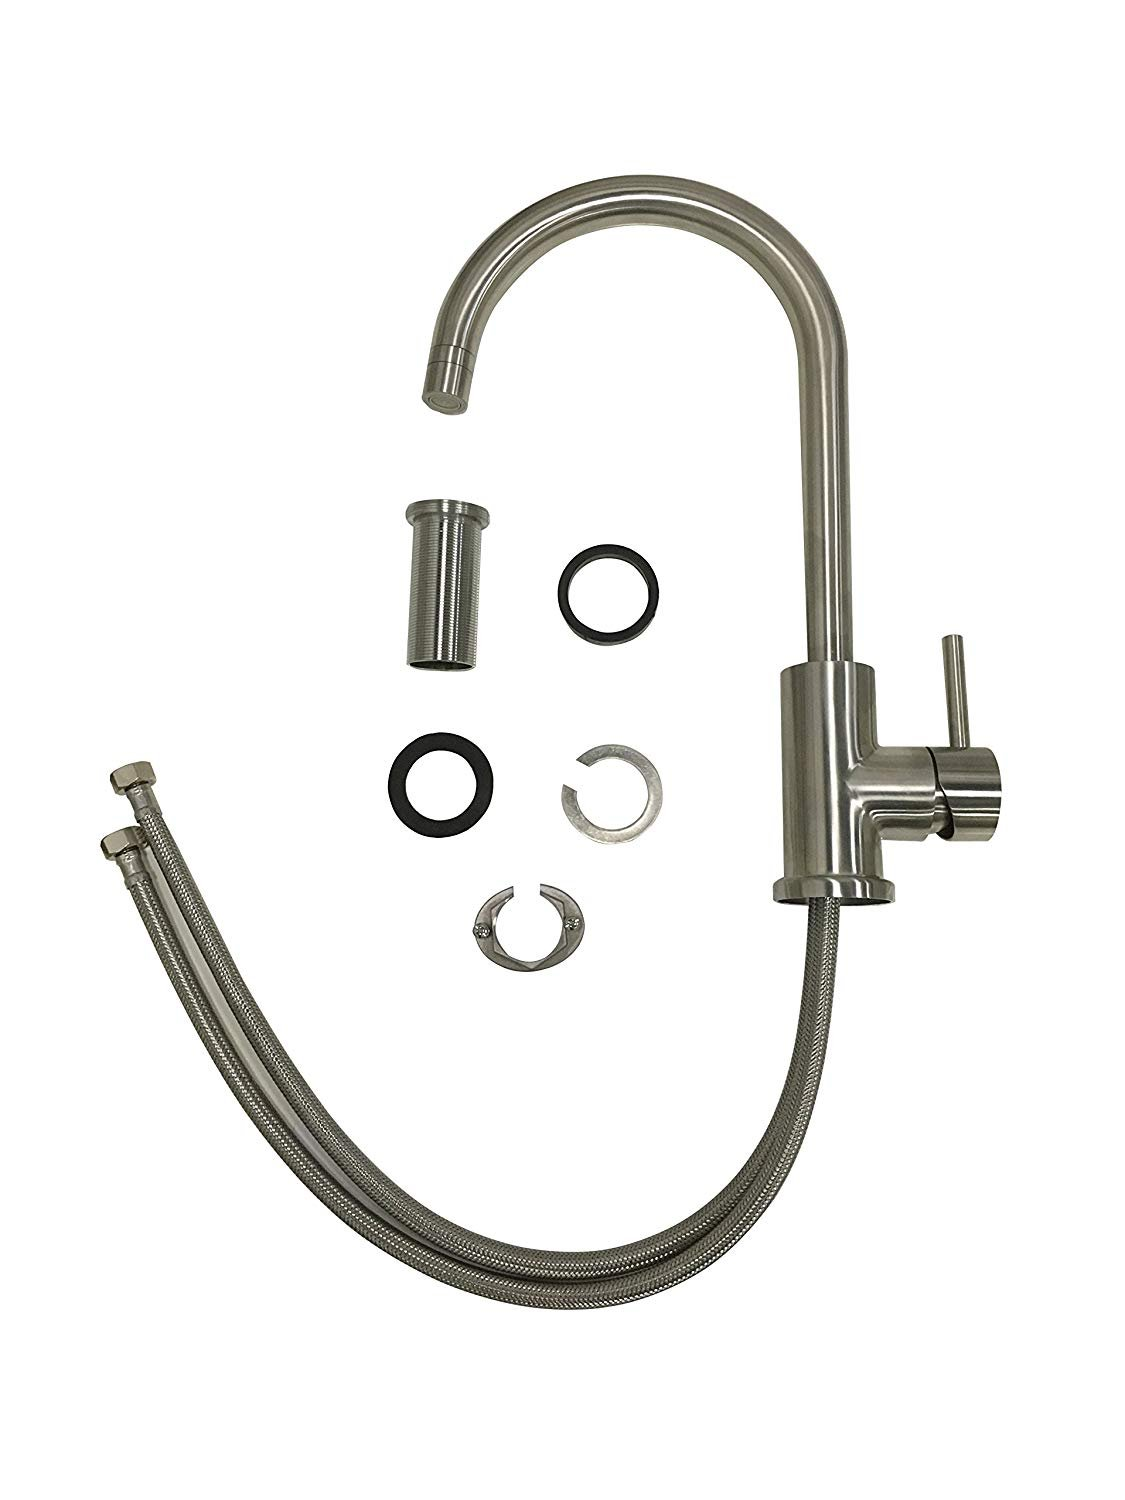 Trywell T304 Solid Stainless Steel Kitchen Sink Faucet, High Arc Single Lever Bar Faucet with Two-function Nozzle,1.8 Gpm by Trywell (Image #8)